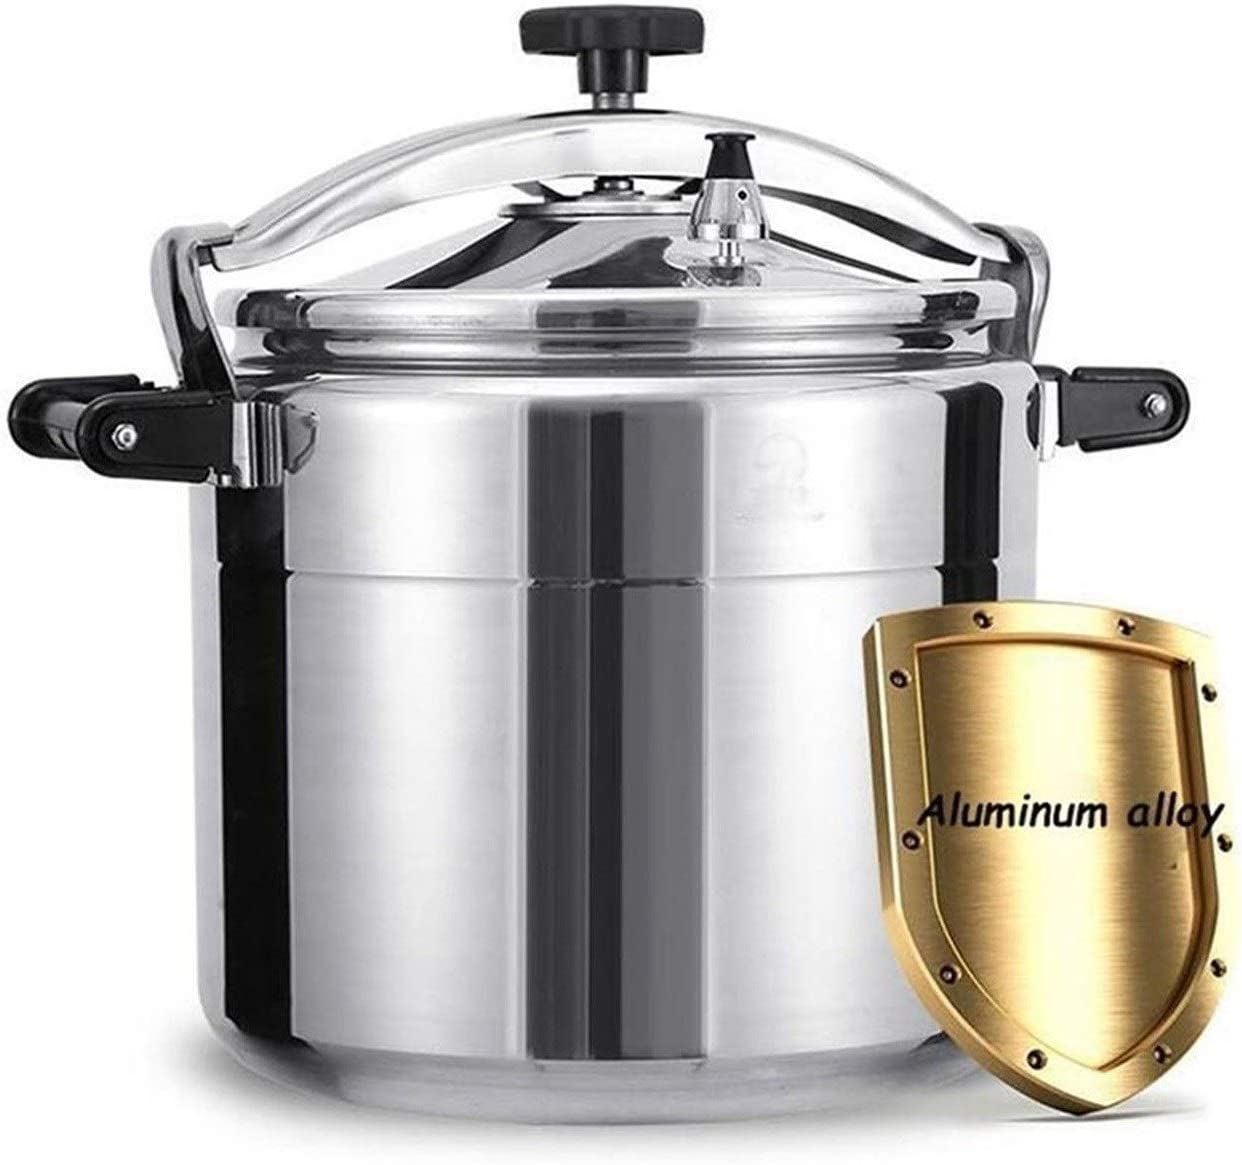 Commercial pressure cooker aluminum alloy explosion-proof pressure cooker is suitable for large-capacity thickened gas stove pressure cooker 9L-50L in family hotel canteens and schools